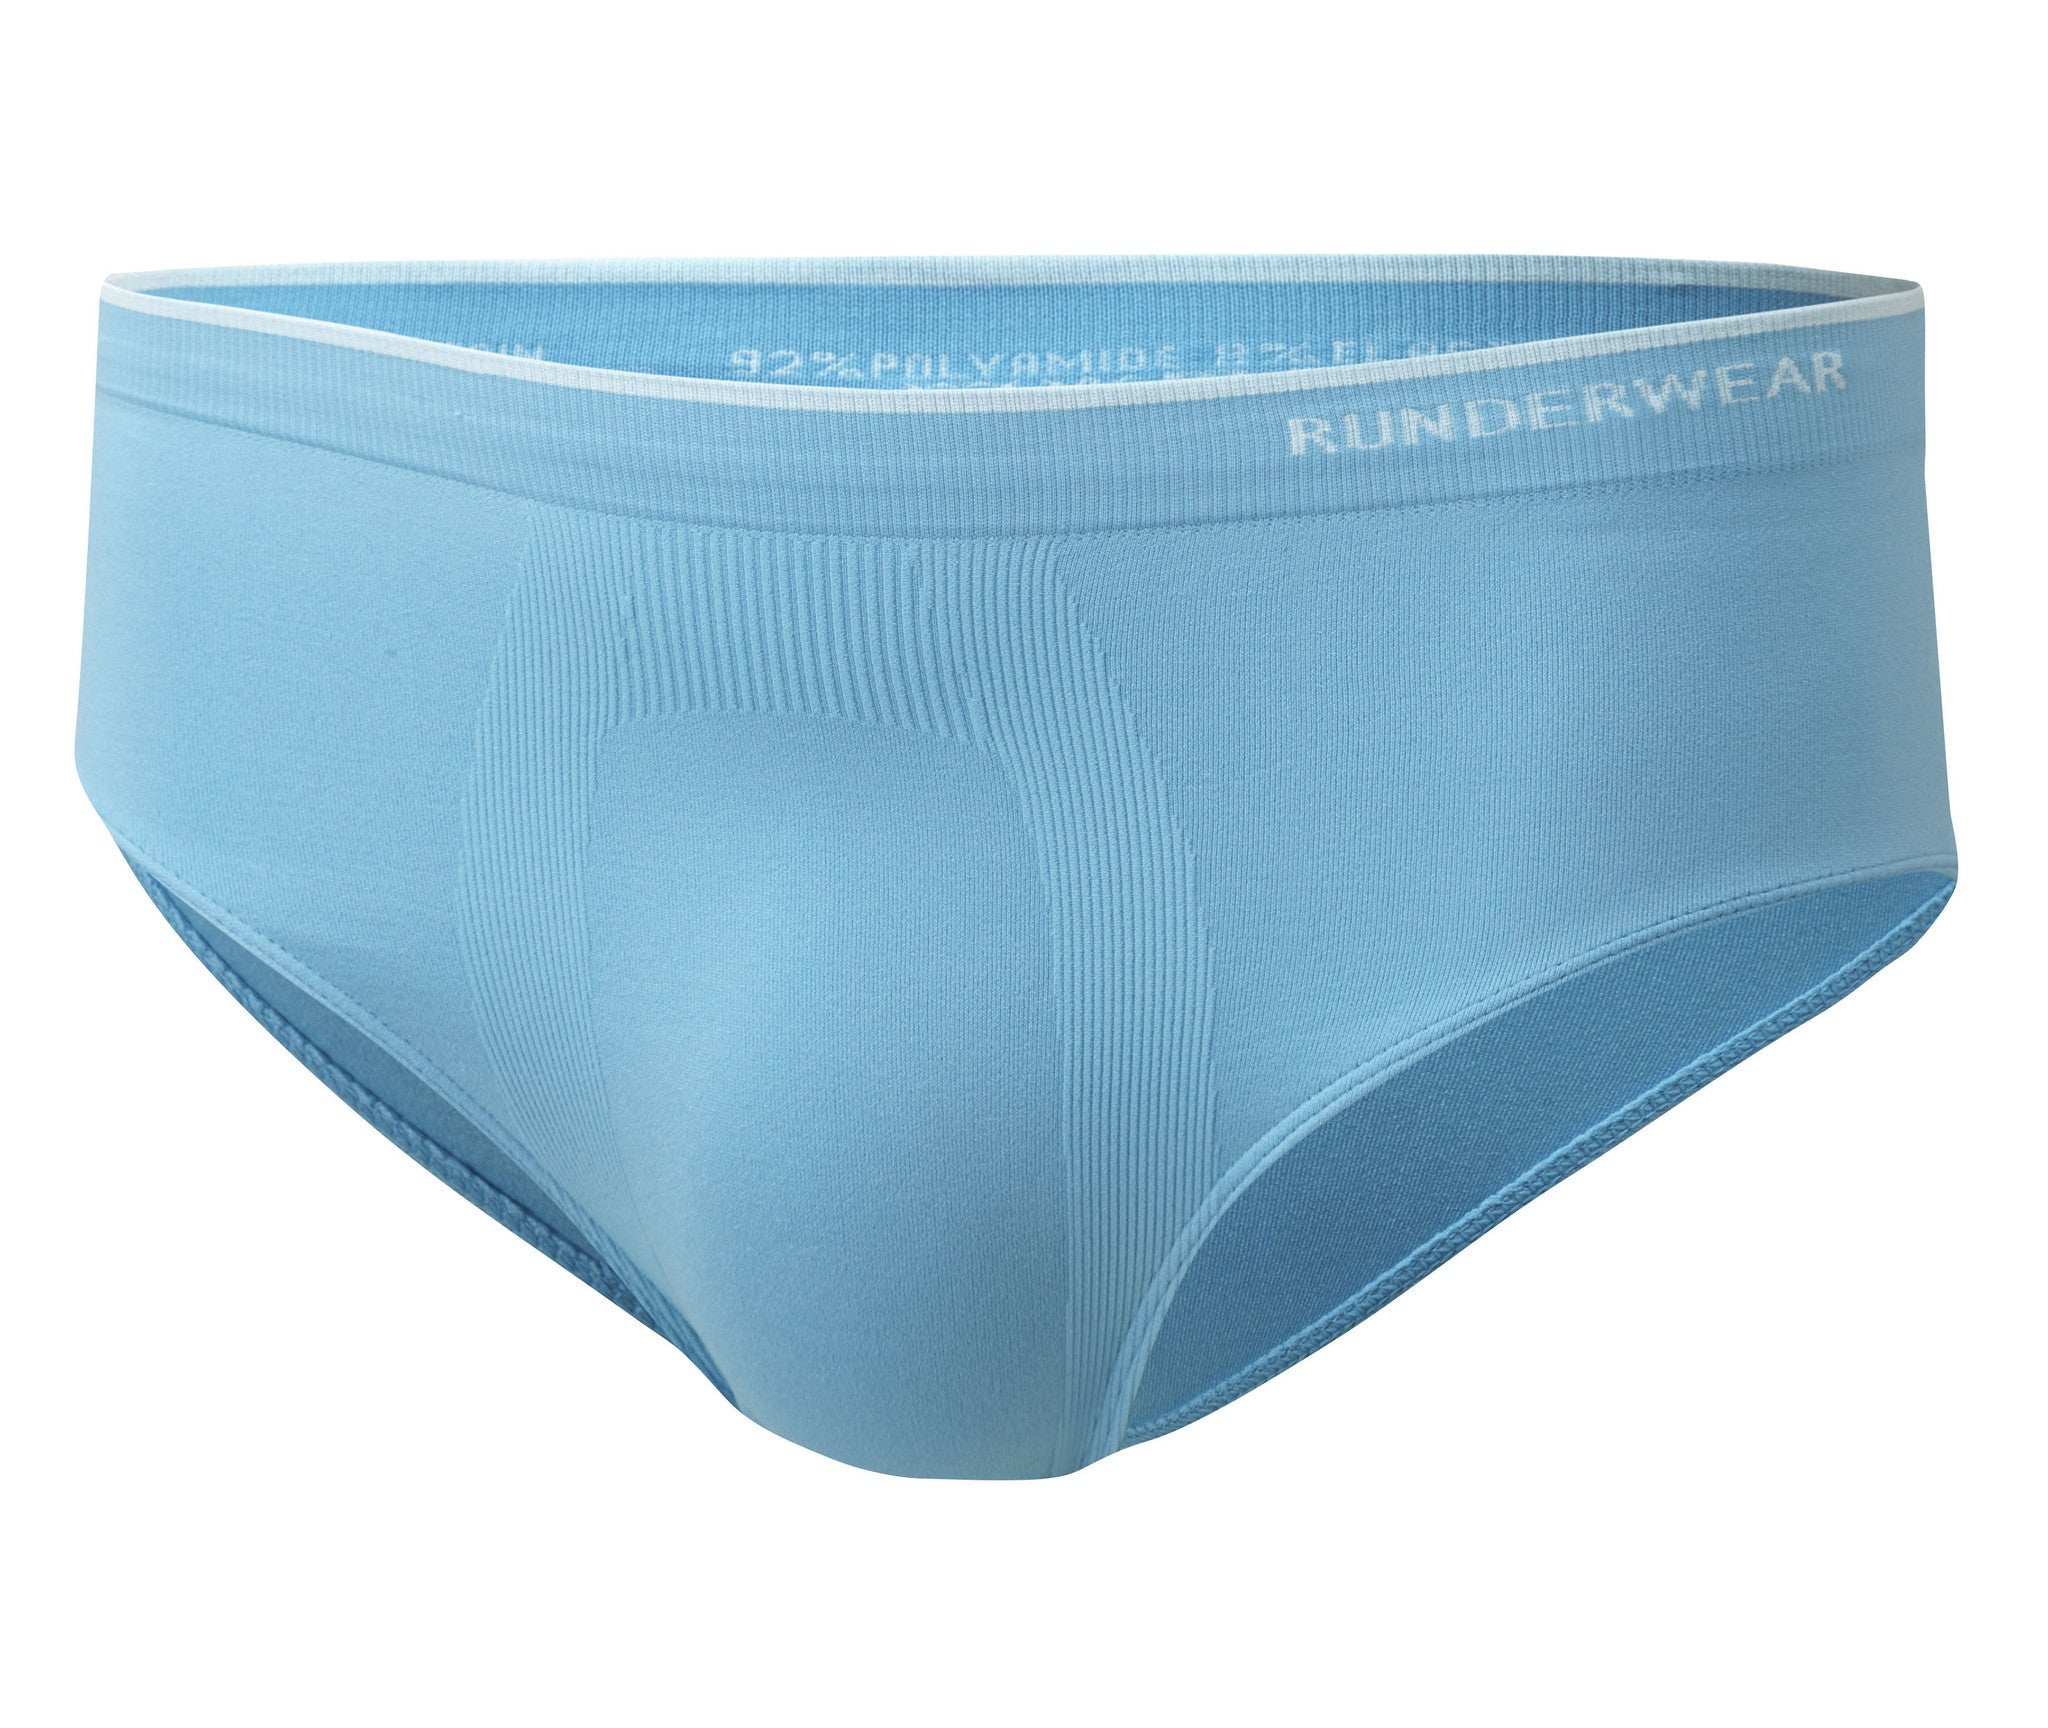 Men's Runderwear Brief